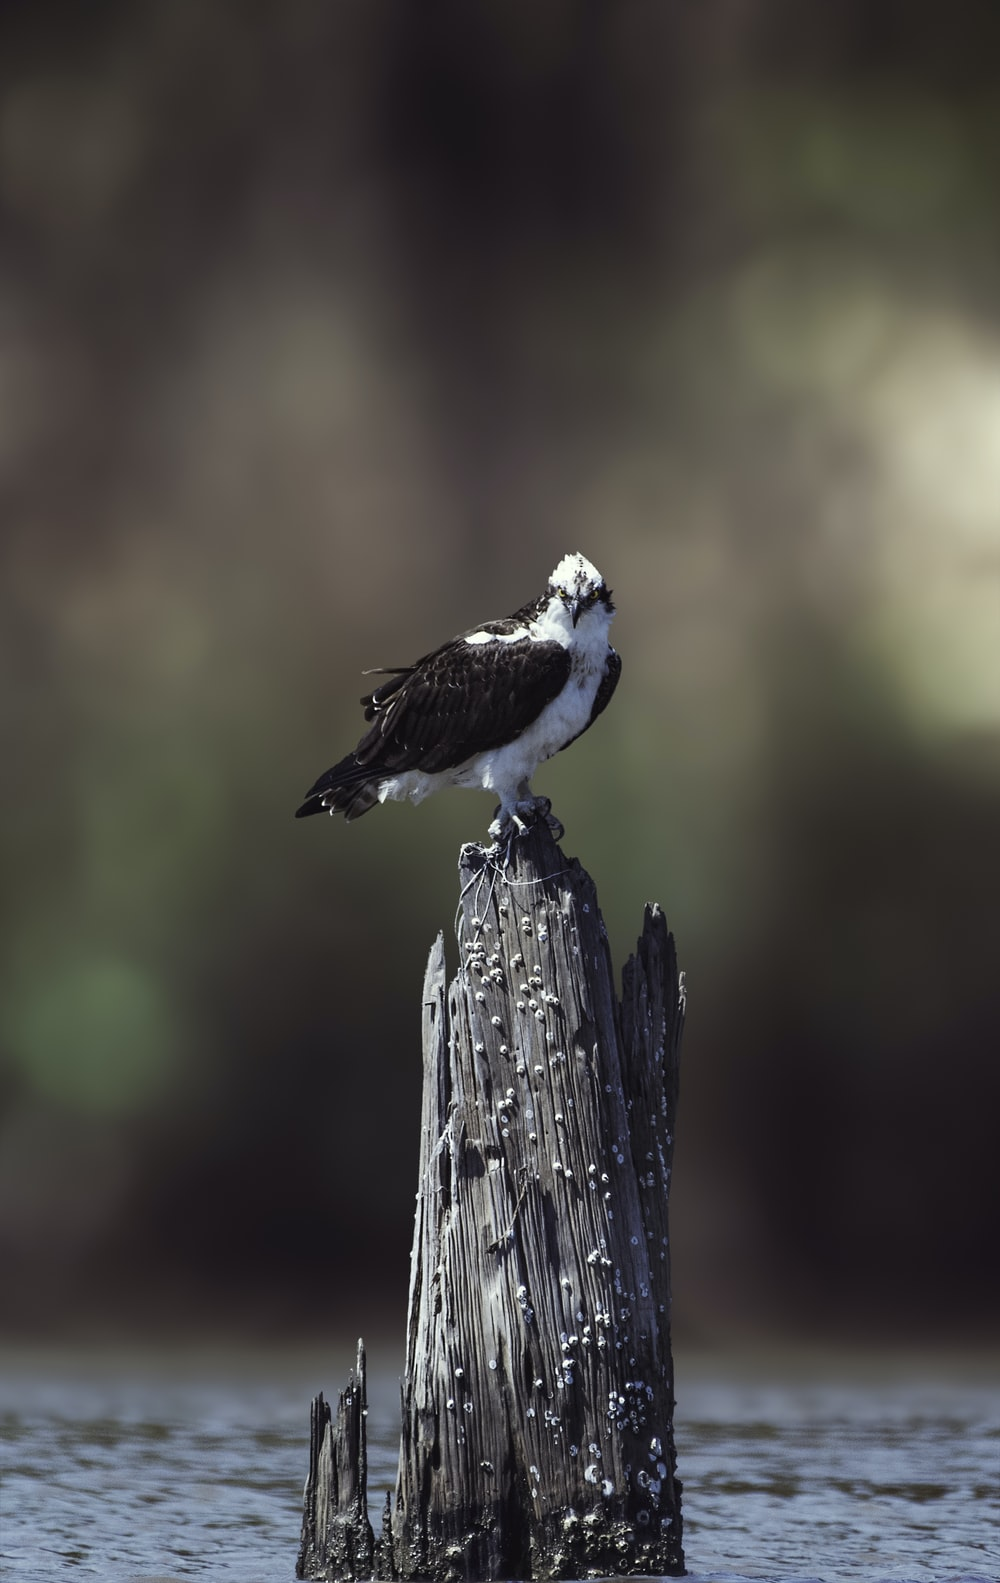 selective focus photography of white and black bird on brown slab surrounded body of water